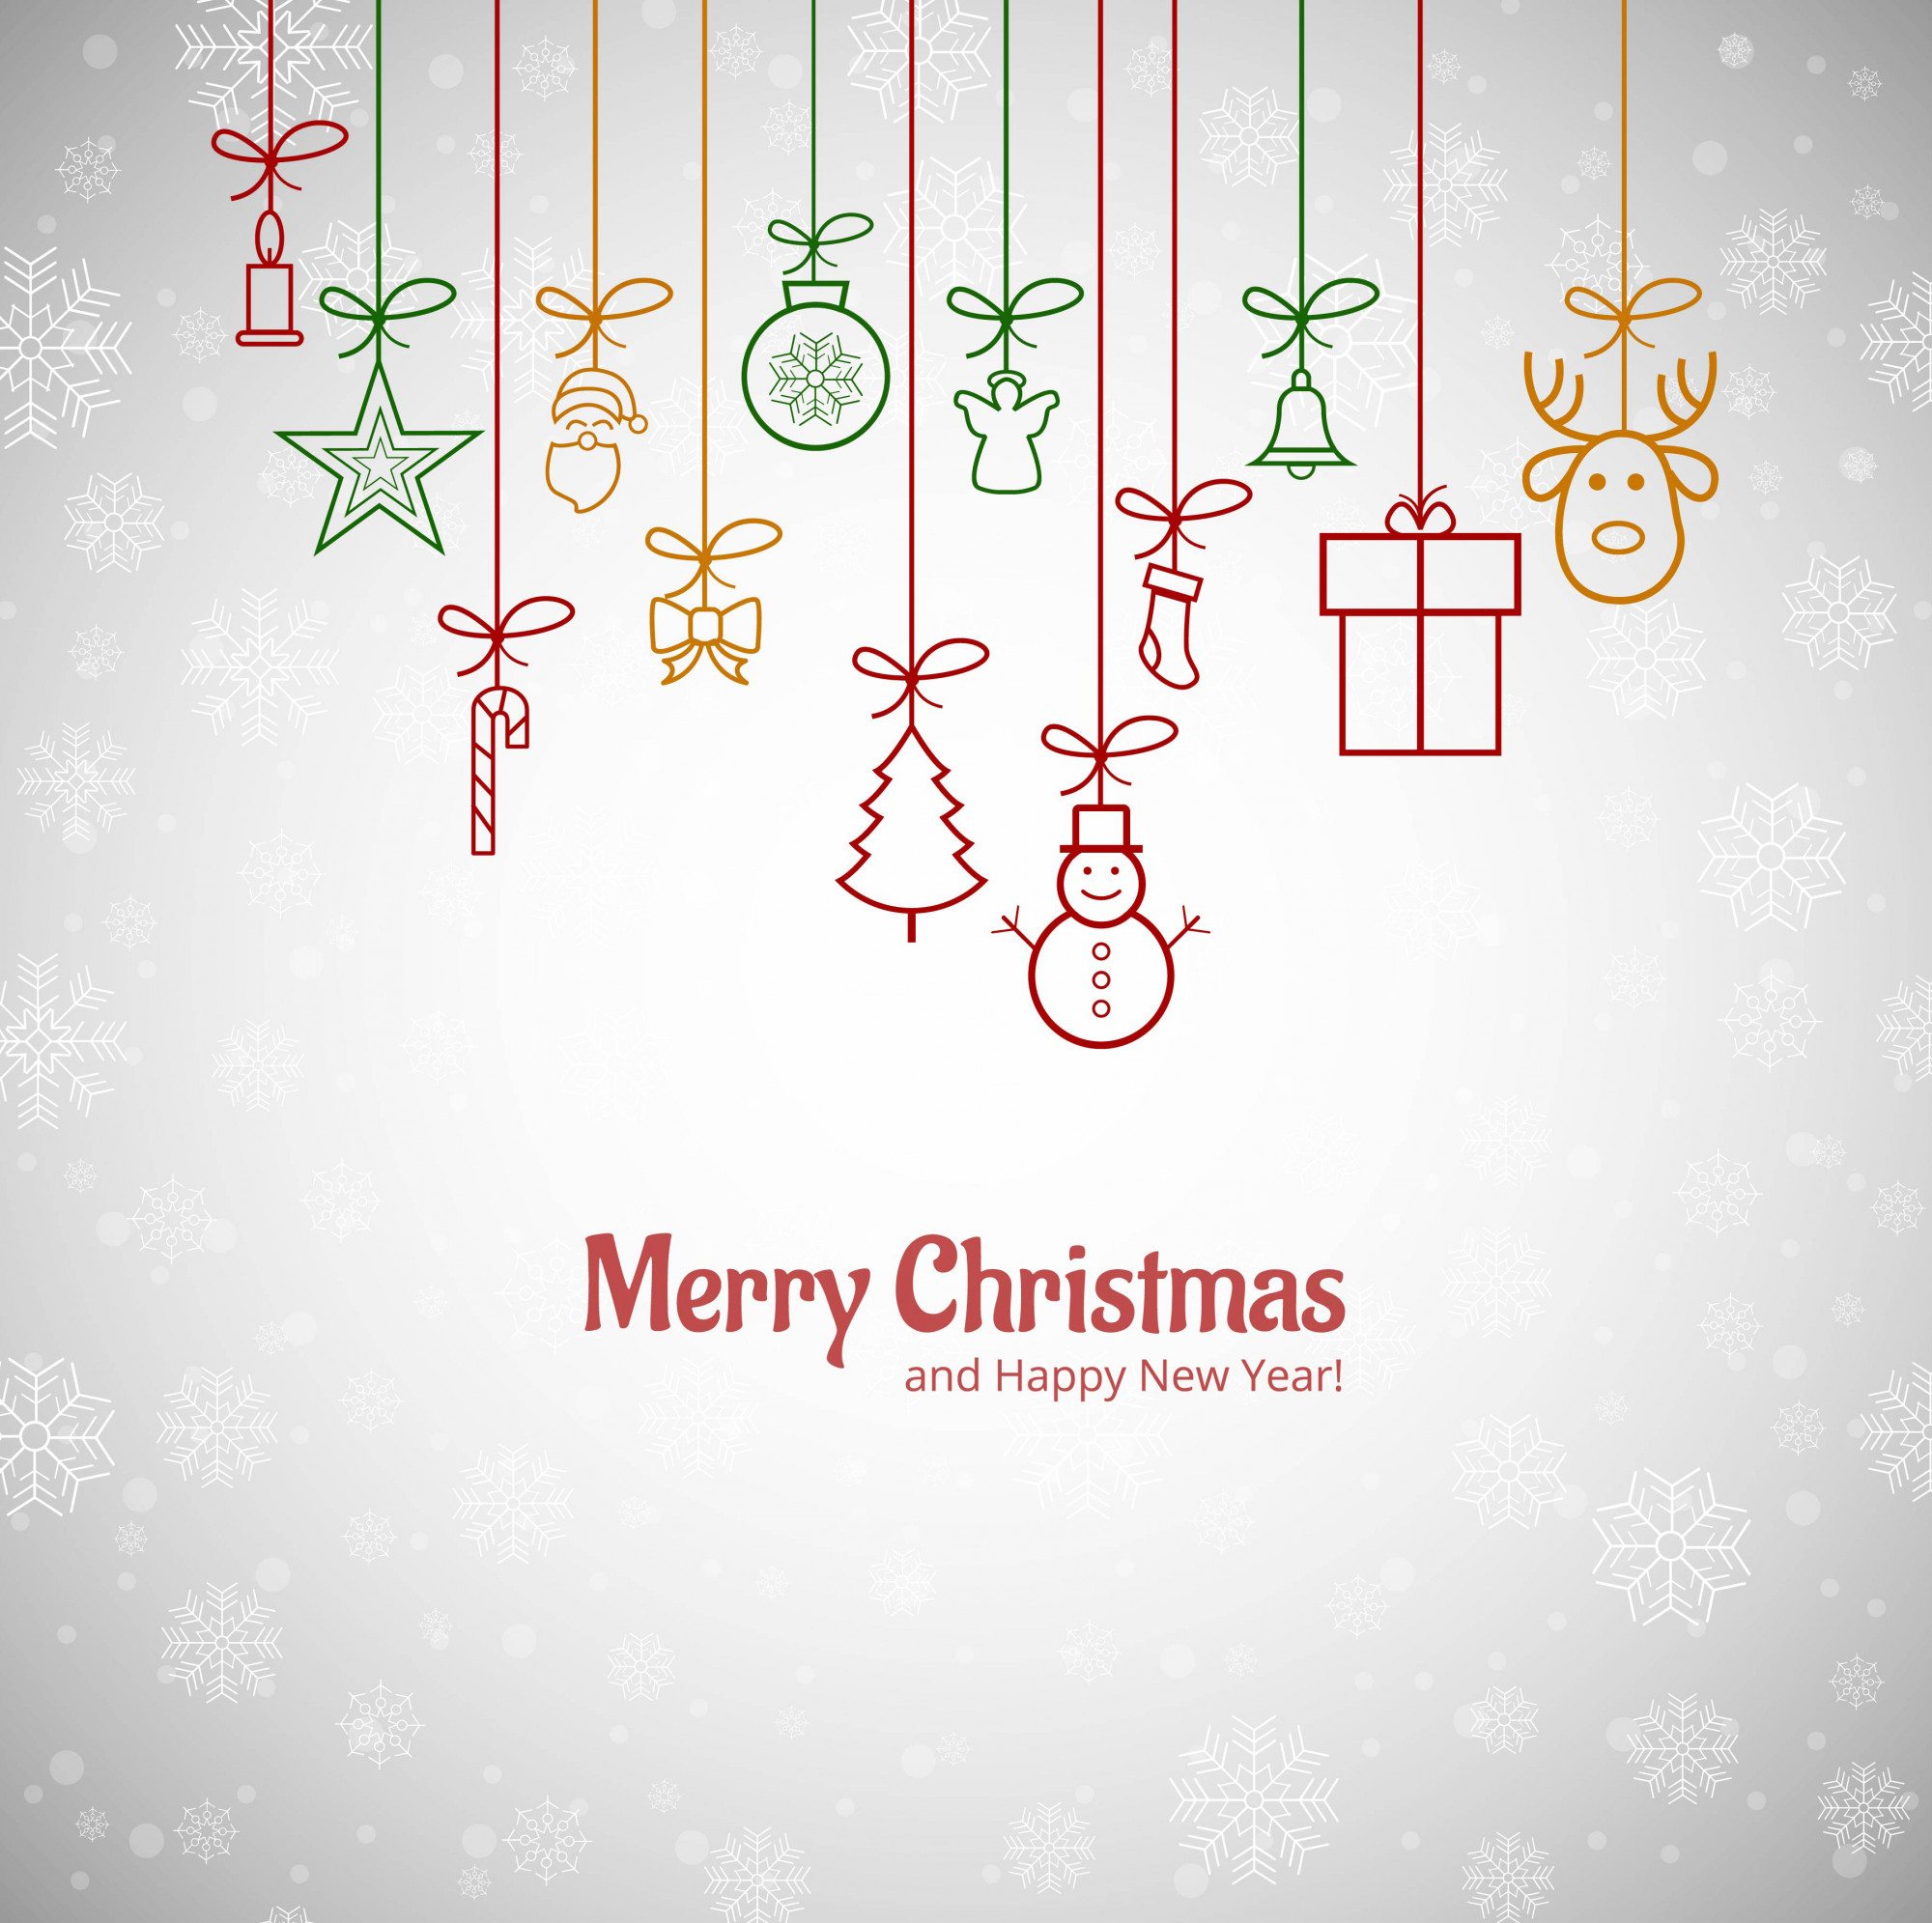 Beautiful Merry christmas greeting card with snowflakes background